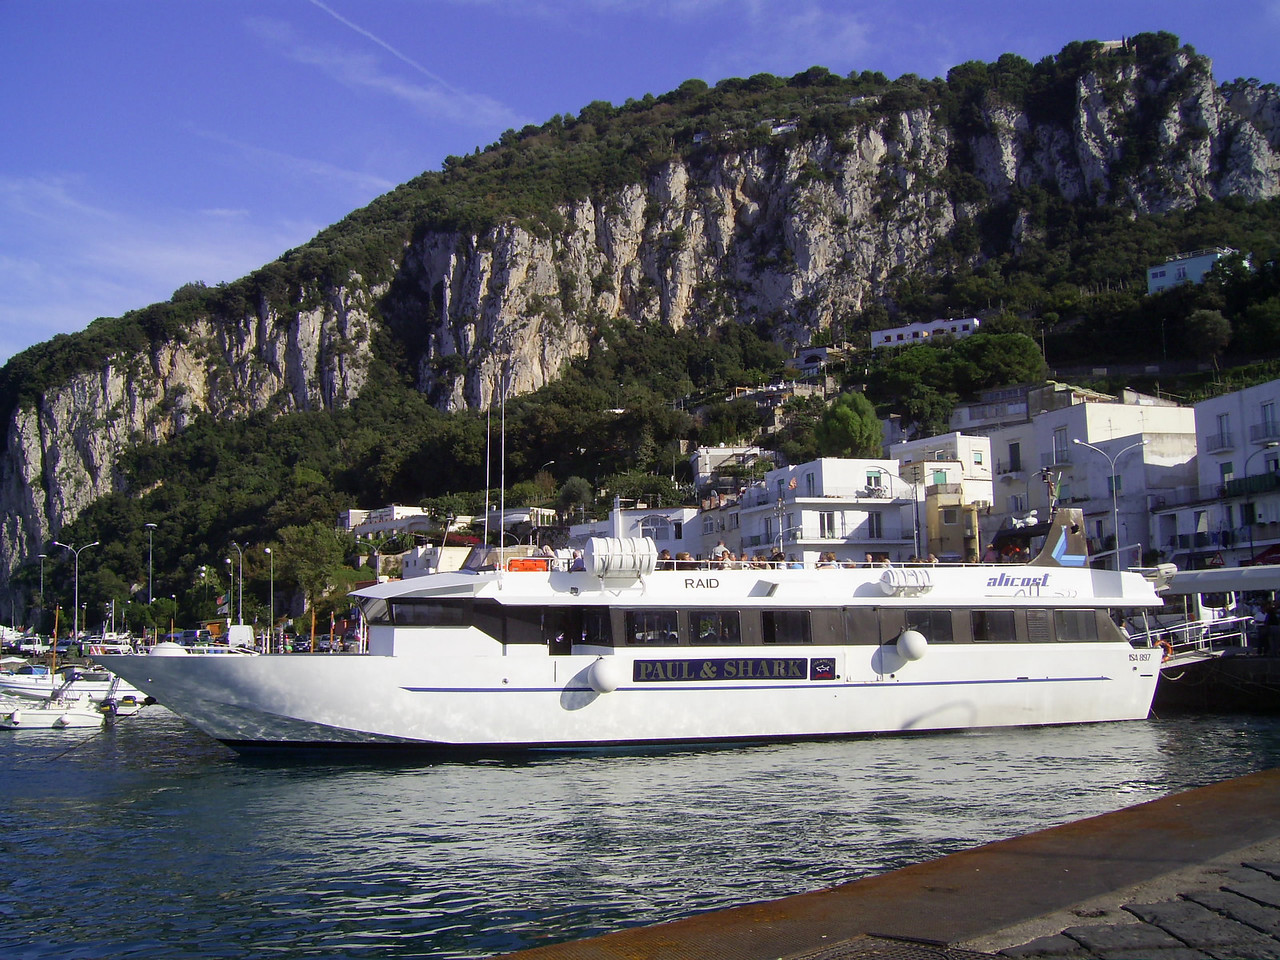 RAID embarking in Capri.